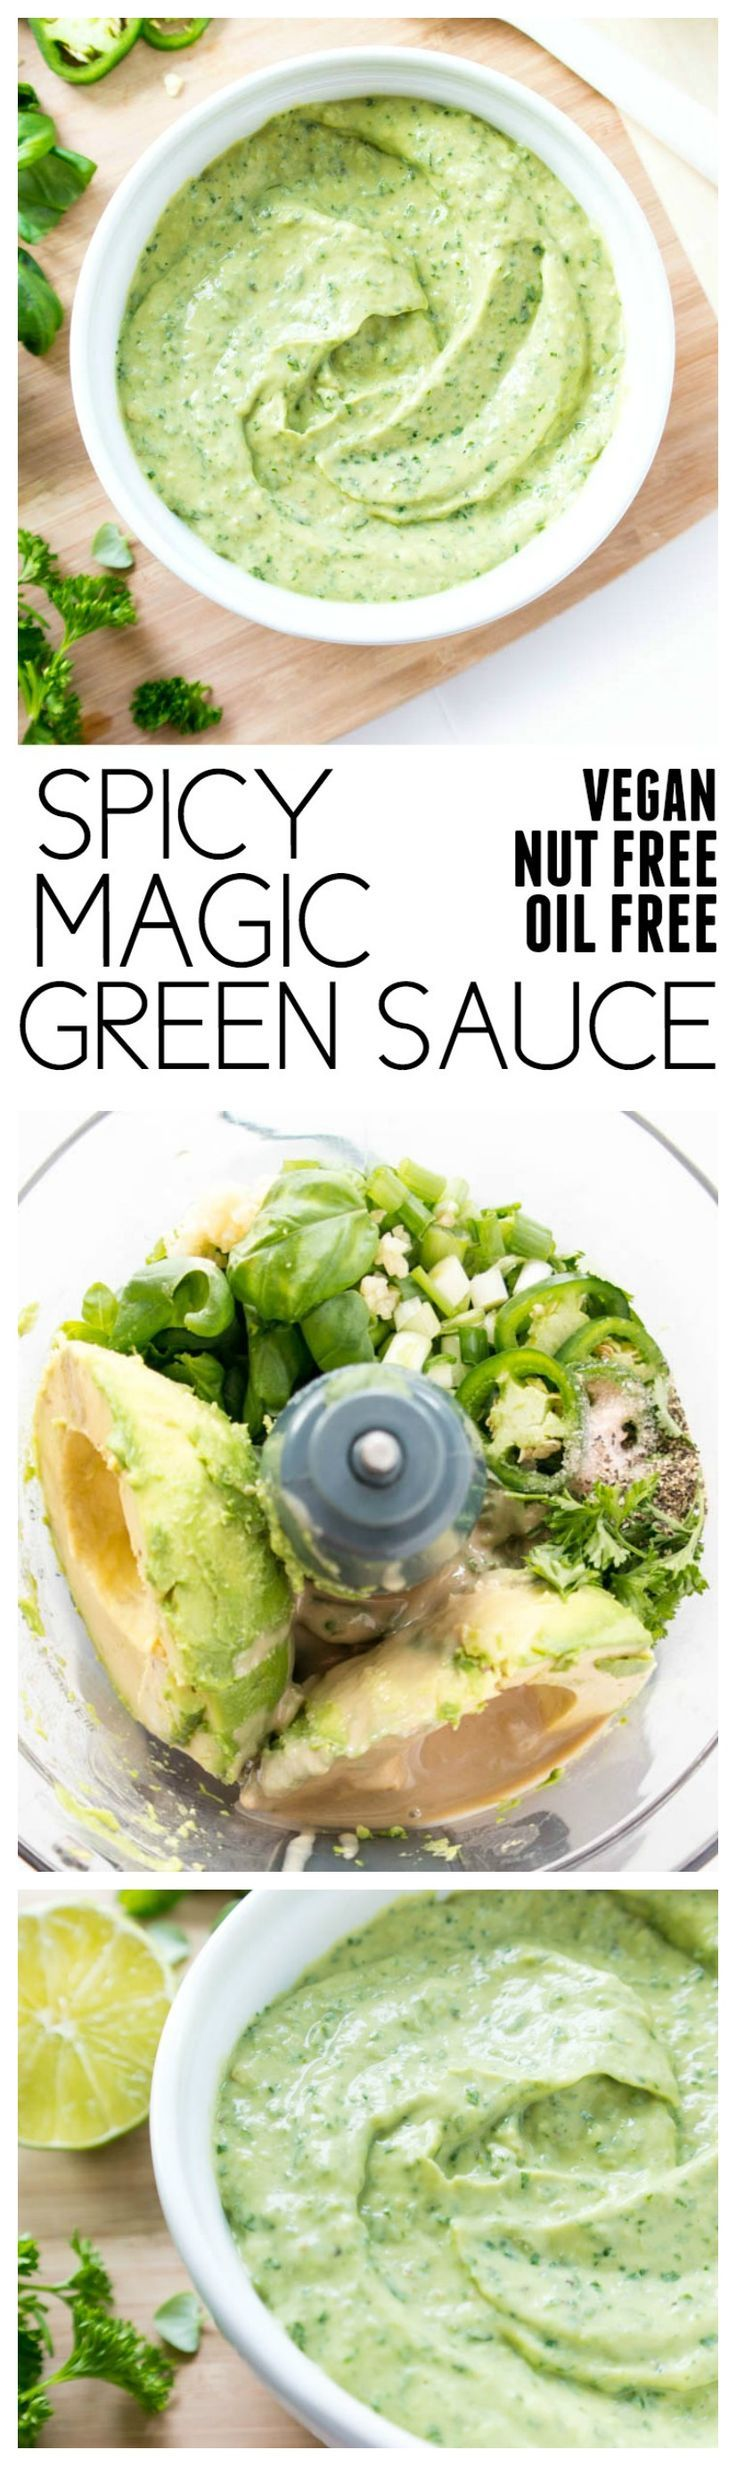 the most addicting sauce that you'll want to put on EVERYTHING! Spicy Magic Green Sauce. Vegan Gluten Free Oil Free Nut Free. Complements all flavors not just mexican flavors. Use as dipping sauce sandwich spread marinade salad dressing etc. #vegan #sauce